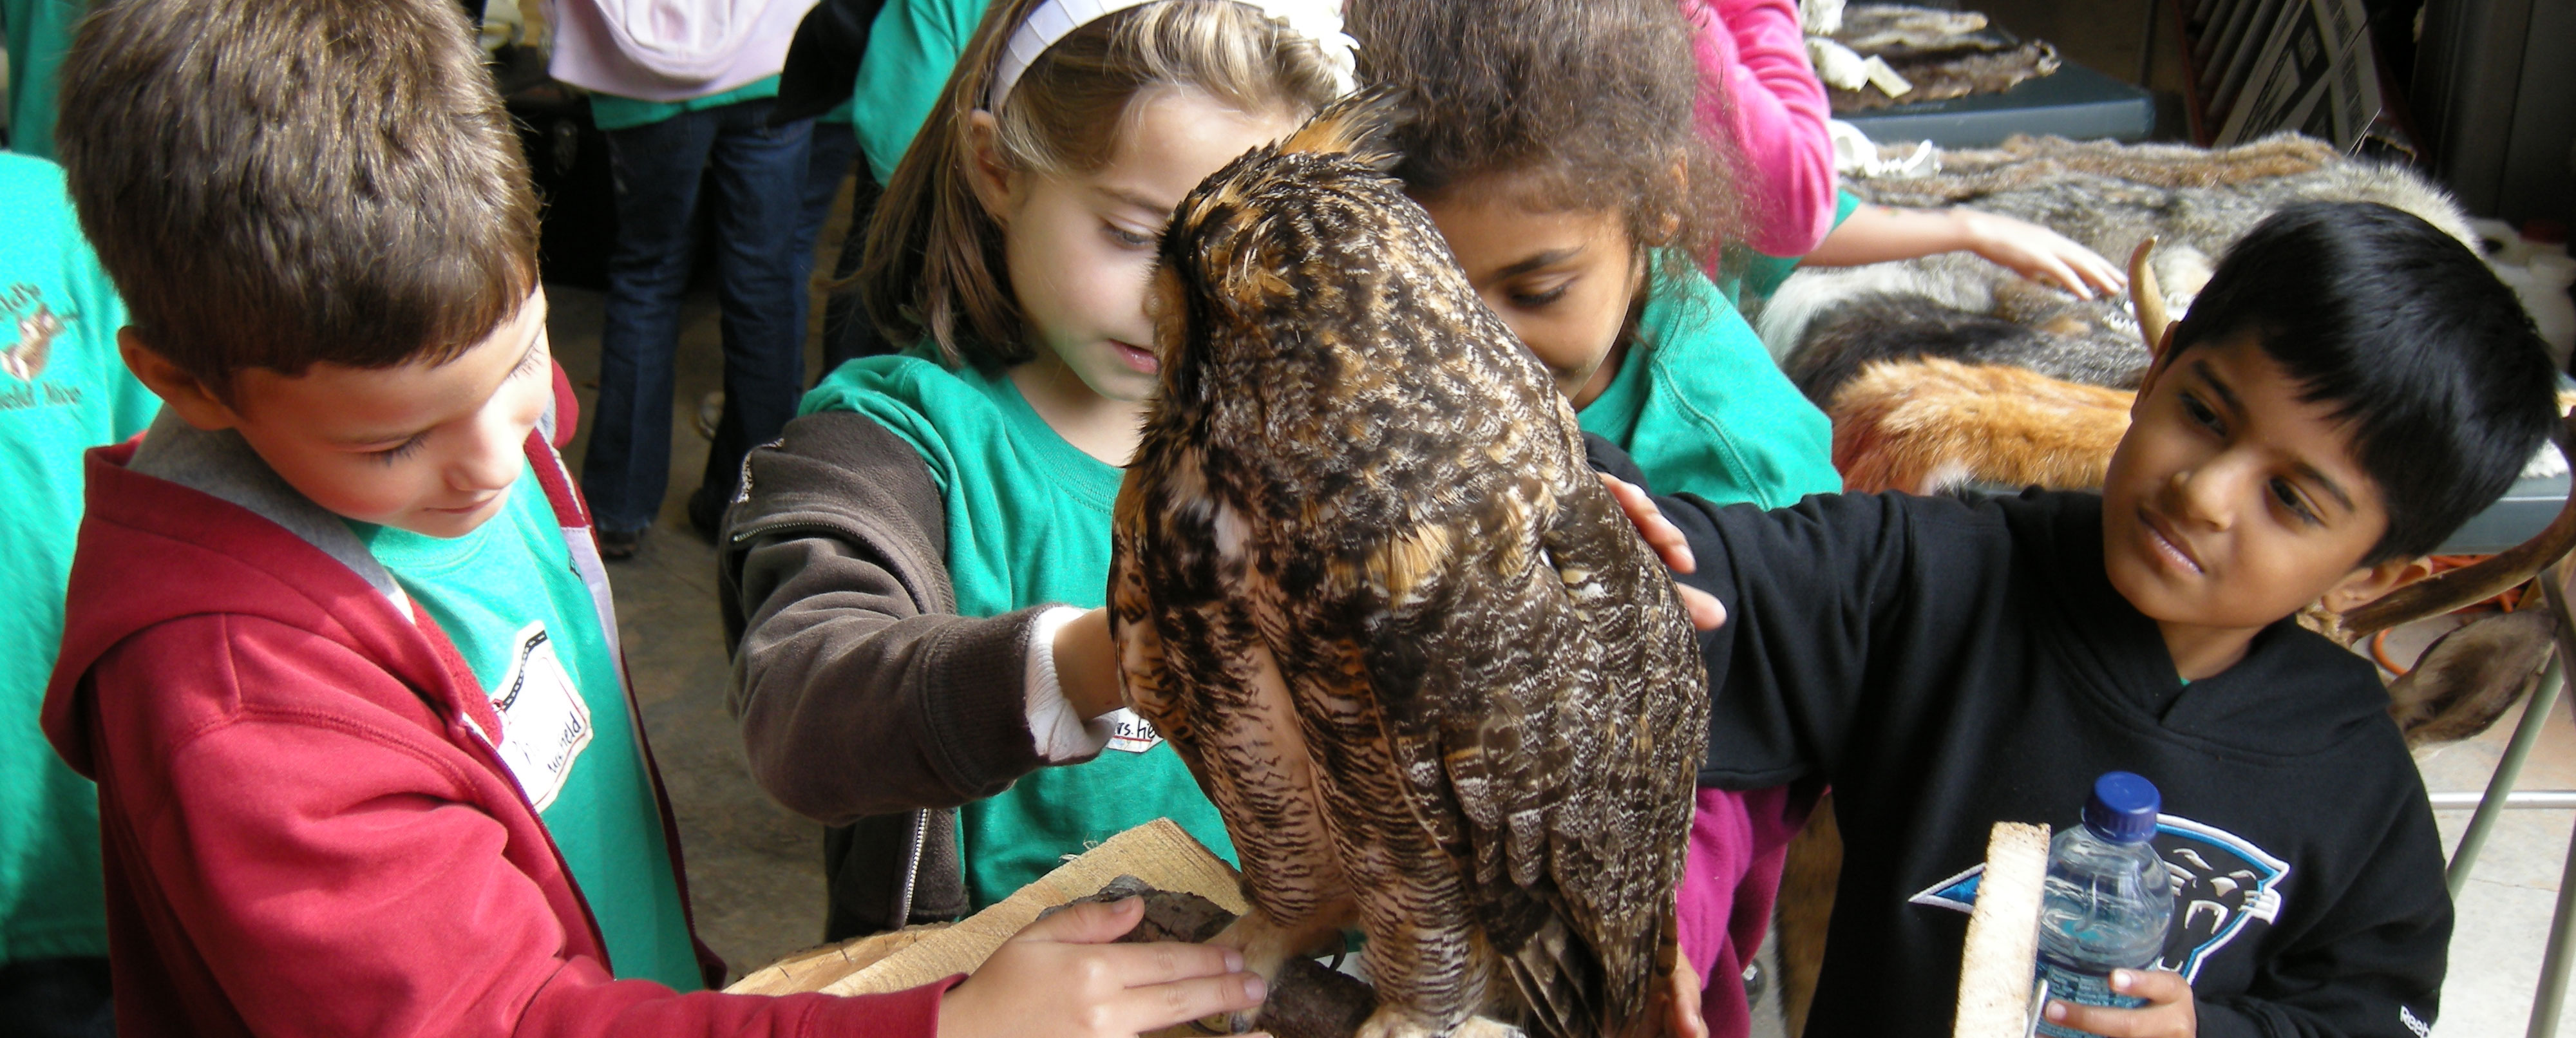 Children learn about Wildlife at Mountain Island Educational State Forest